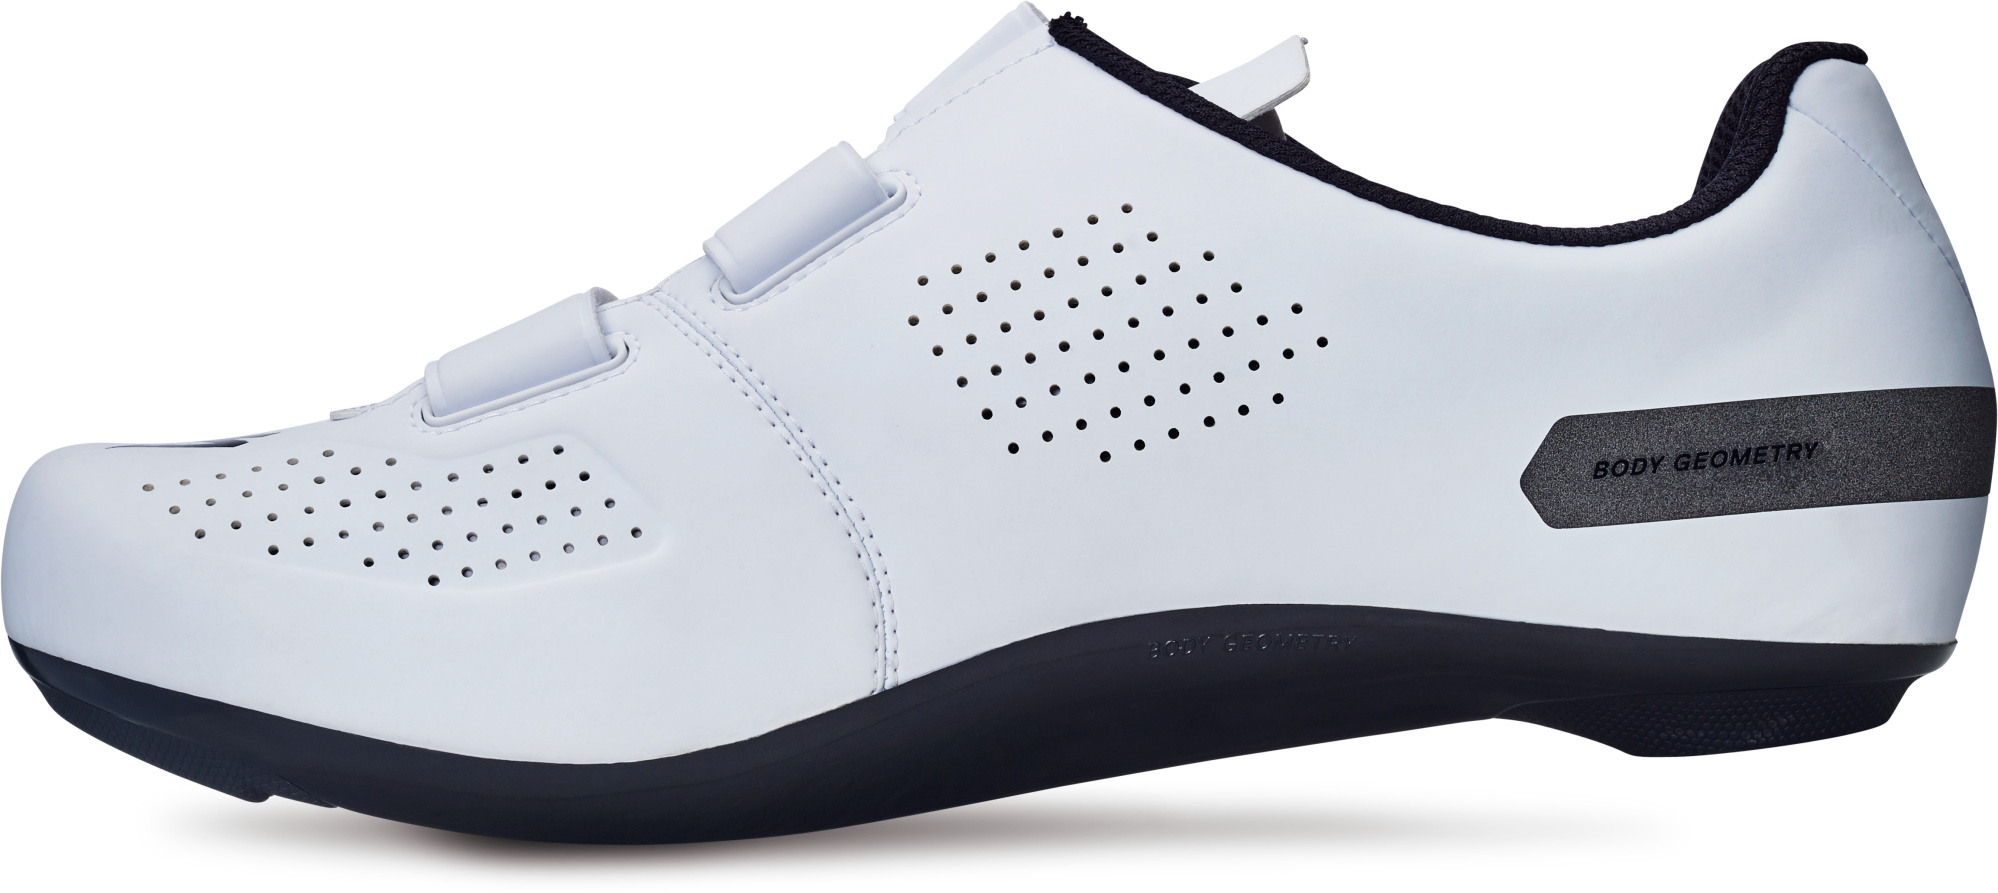 Specialized Torch shoe...